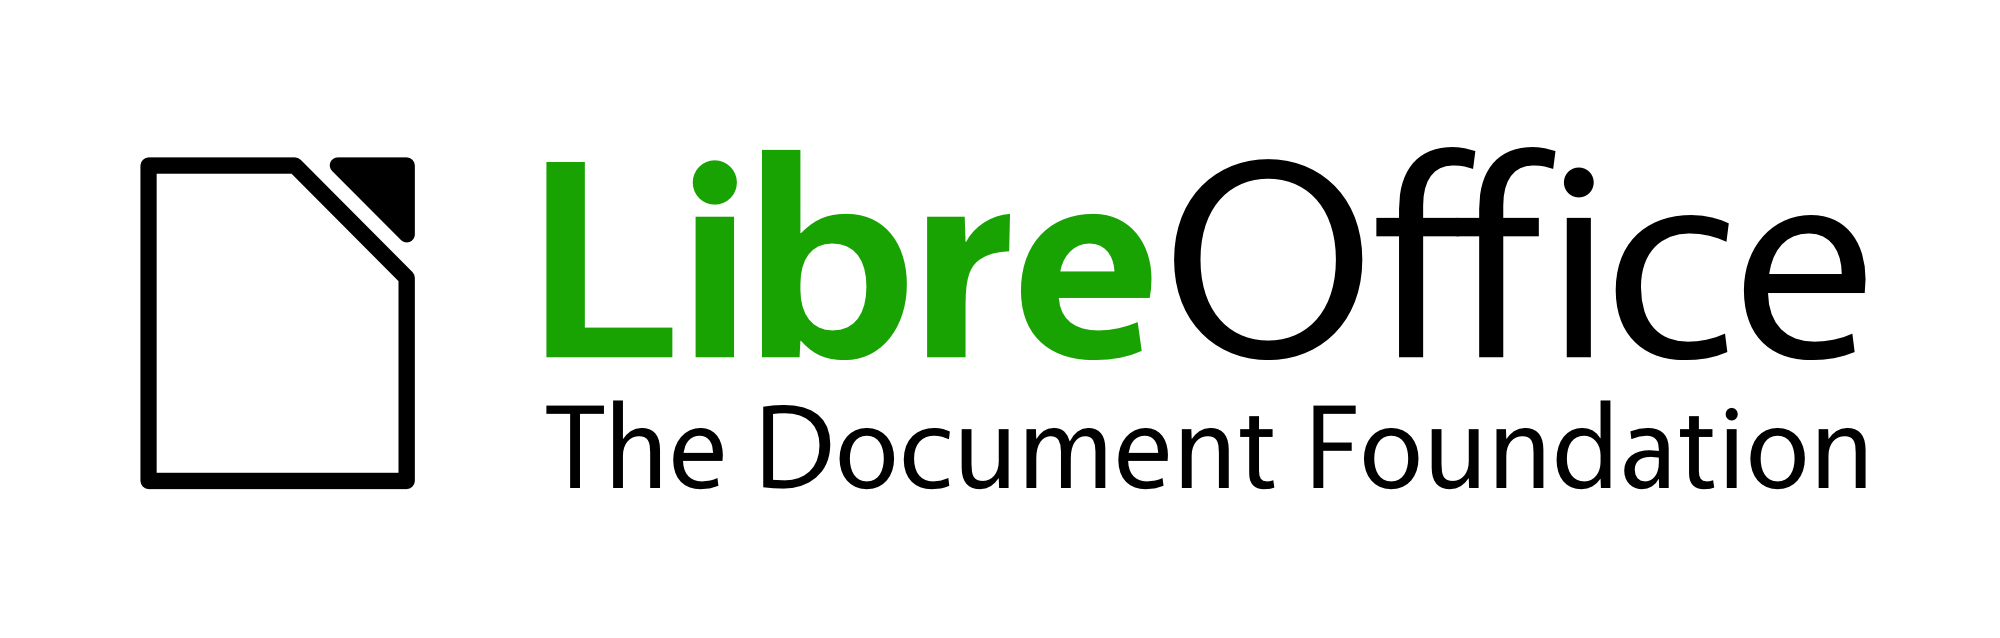 http://softwarelivre.org/furusho/broffice/libreoffice-initial-artwork-logo-colorlogobasic-2000px.png